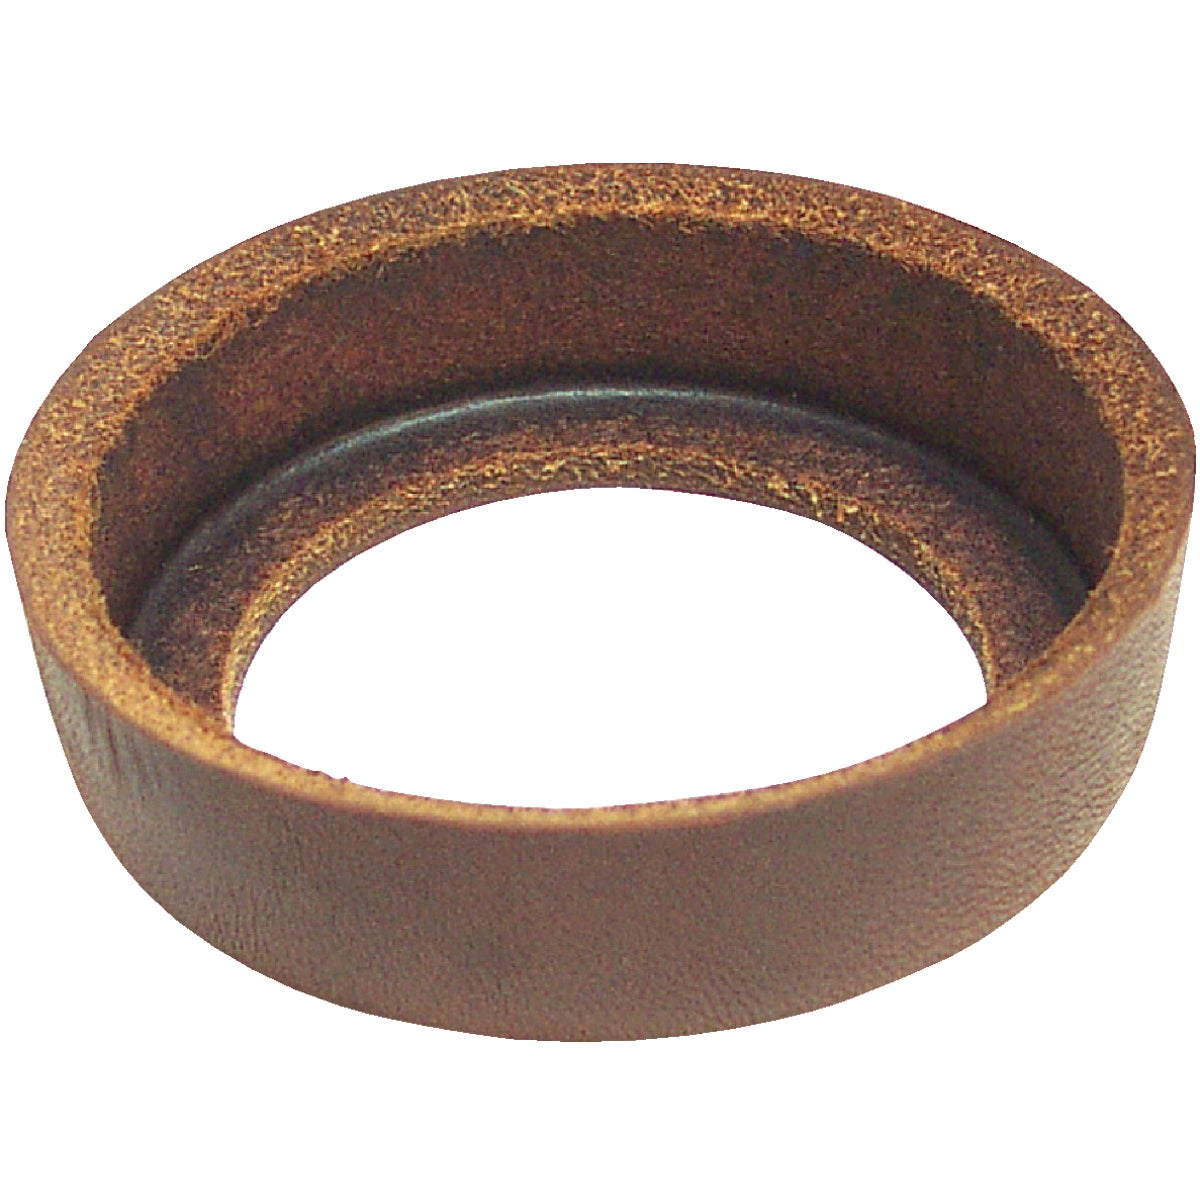 "3"" CUP LEATHER - 711CL3000 by Merrill Mfg"